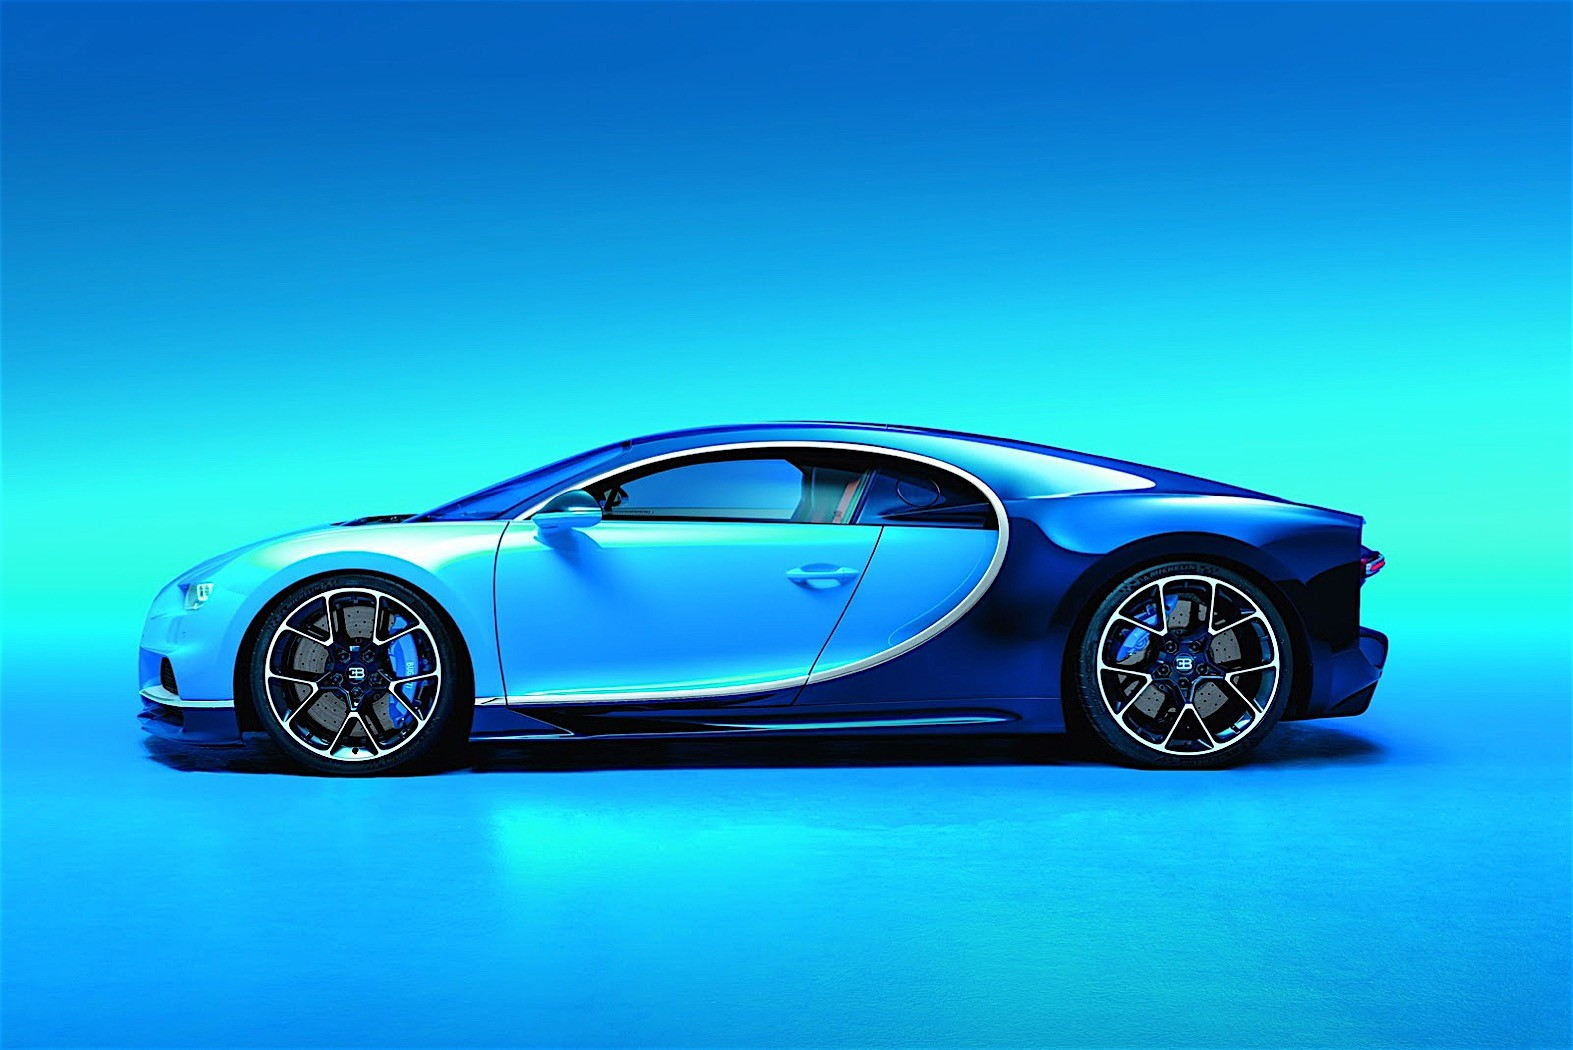 Cars For Sale Los Angeles >> 2017 Bugatti Chiron Lets Its Quad-Turbocharged W16 Loose - autoevolution